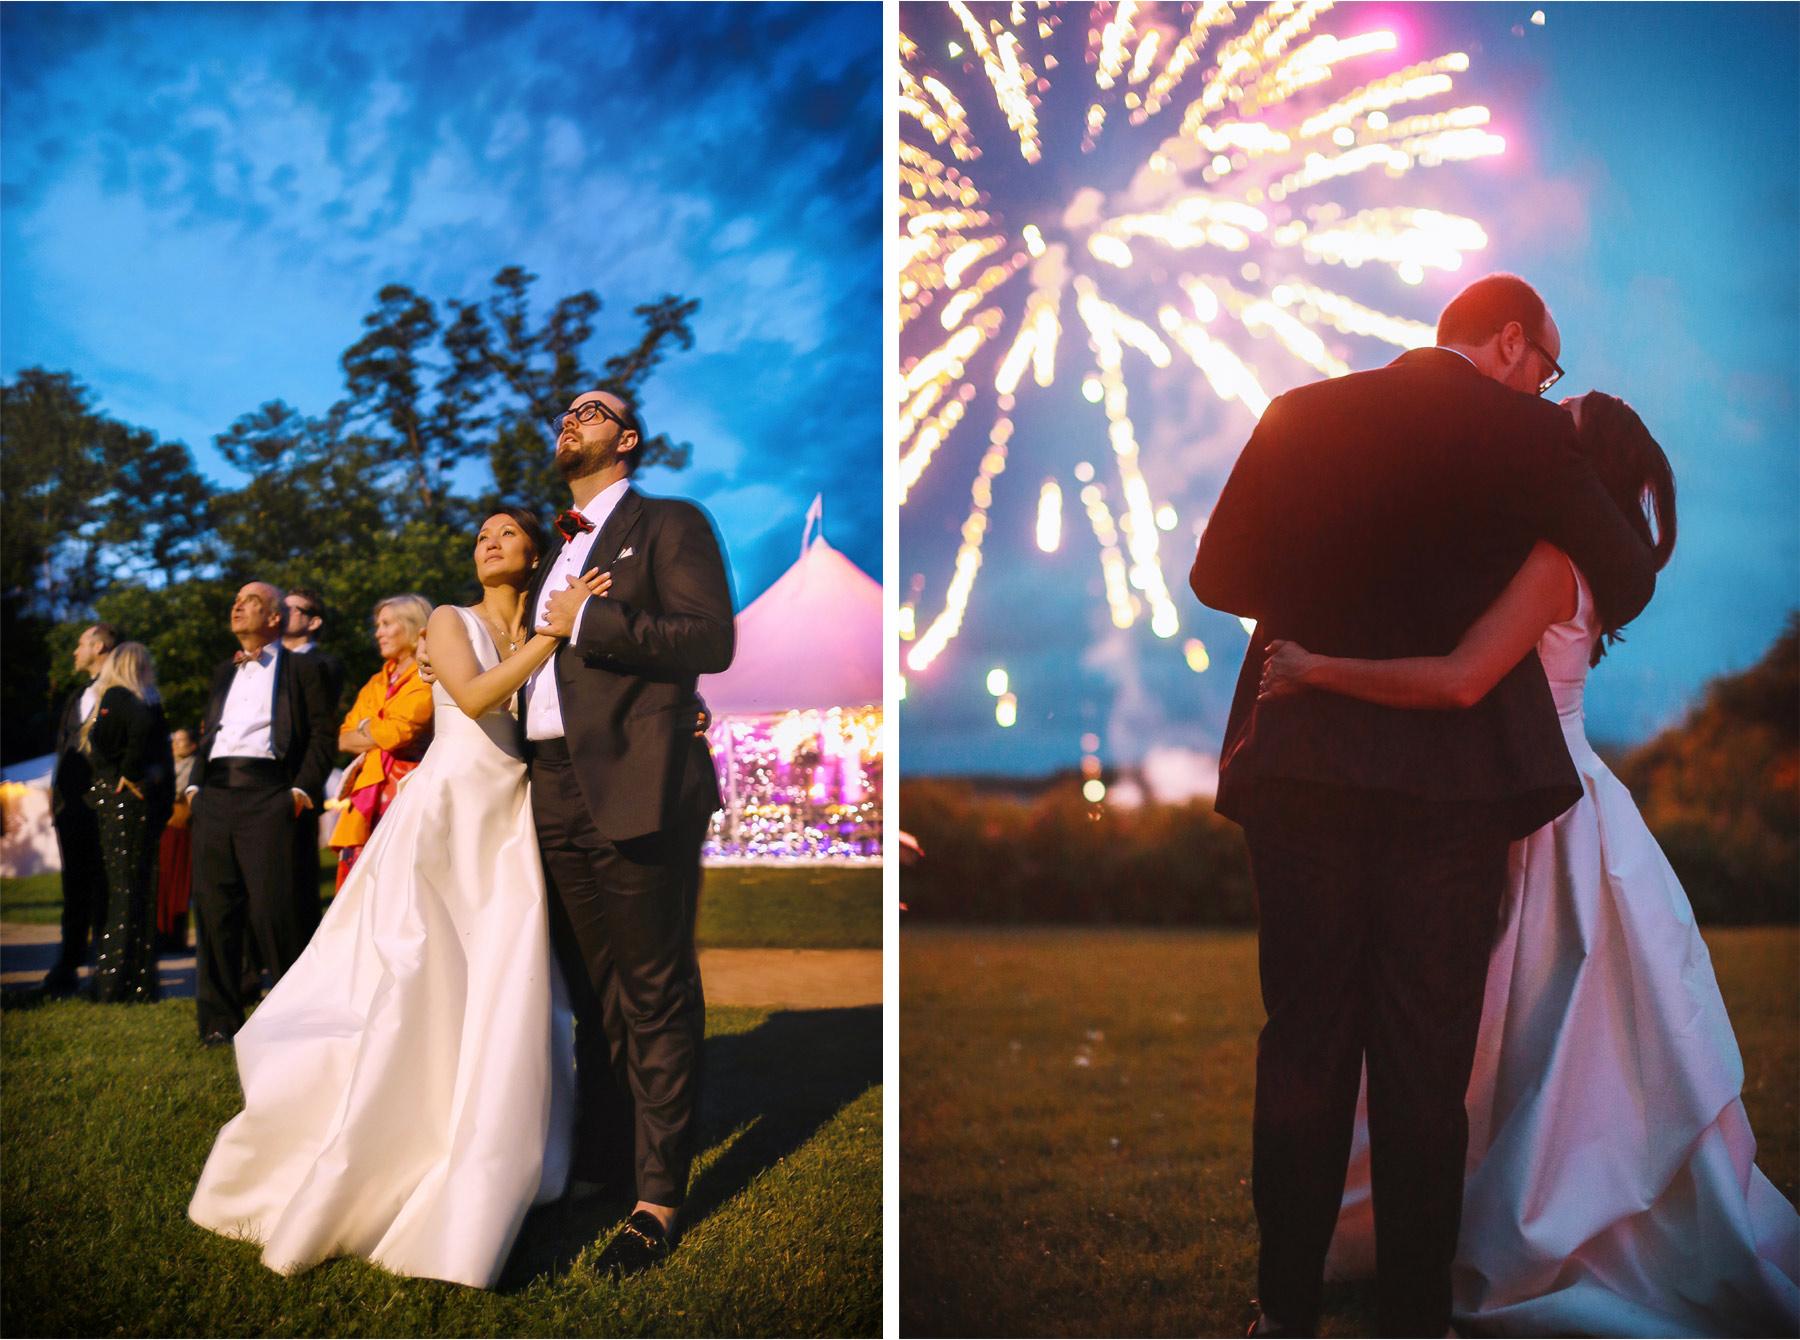 26-Vick-Photography-Wedding-Stouts-Island-Lodge-Wisconsin-Summer-Reception-Outdoor-Fireworks-Bride-Groom-MiJa-and-Lucius.jpg